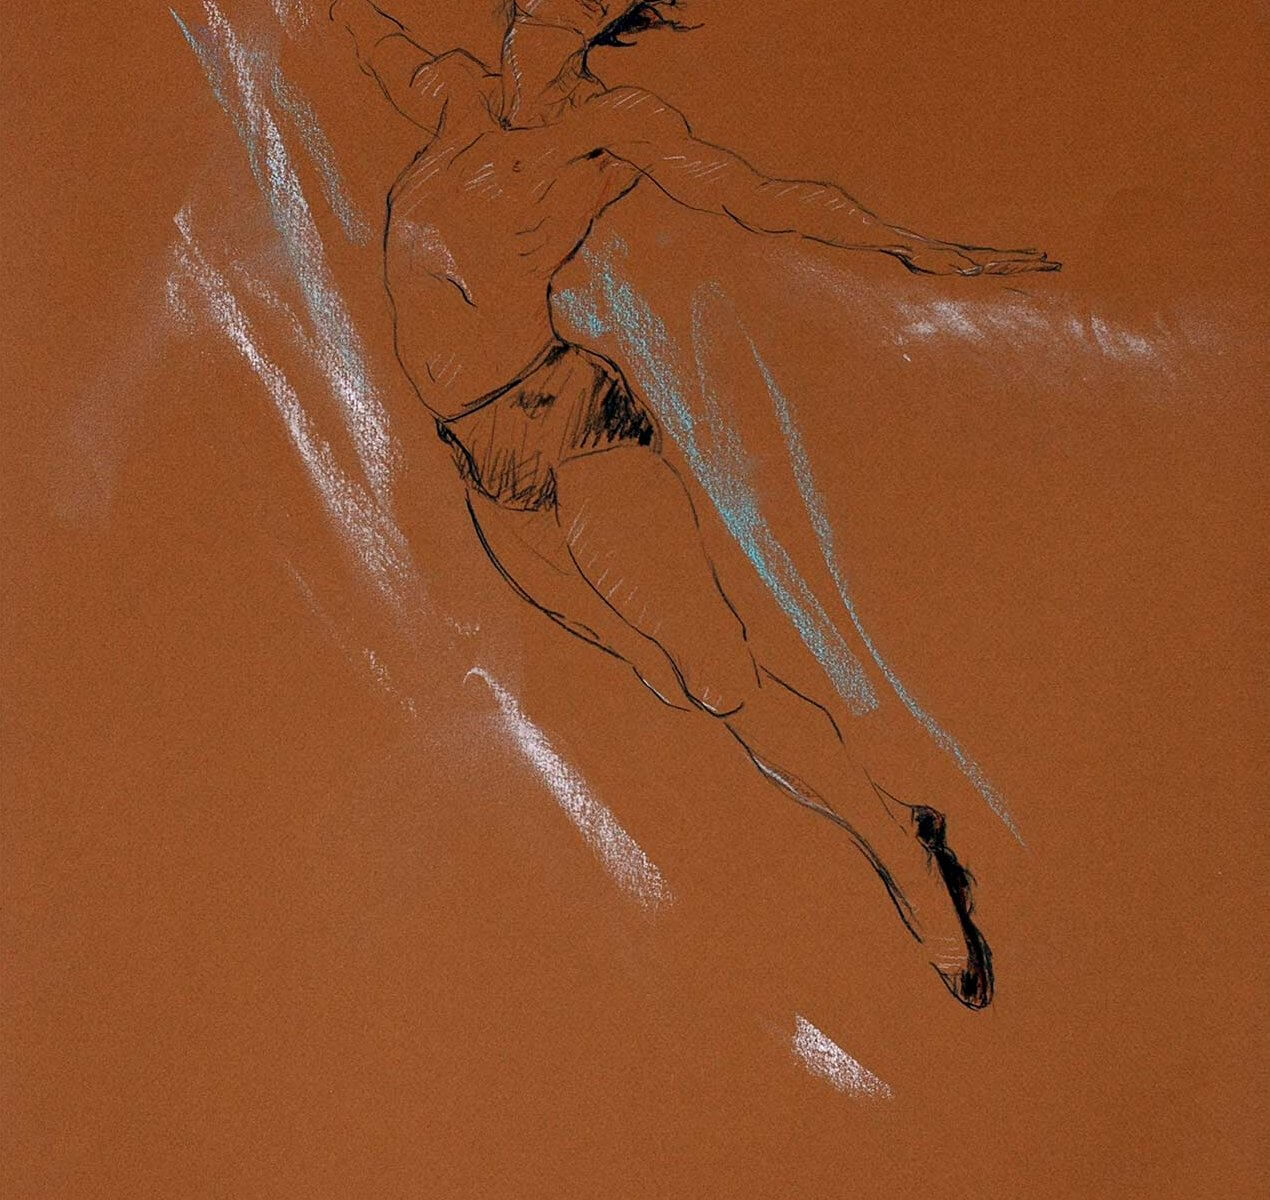 Flying Solo a dance pastel by Andrew DeVries copyright 2009.